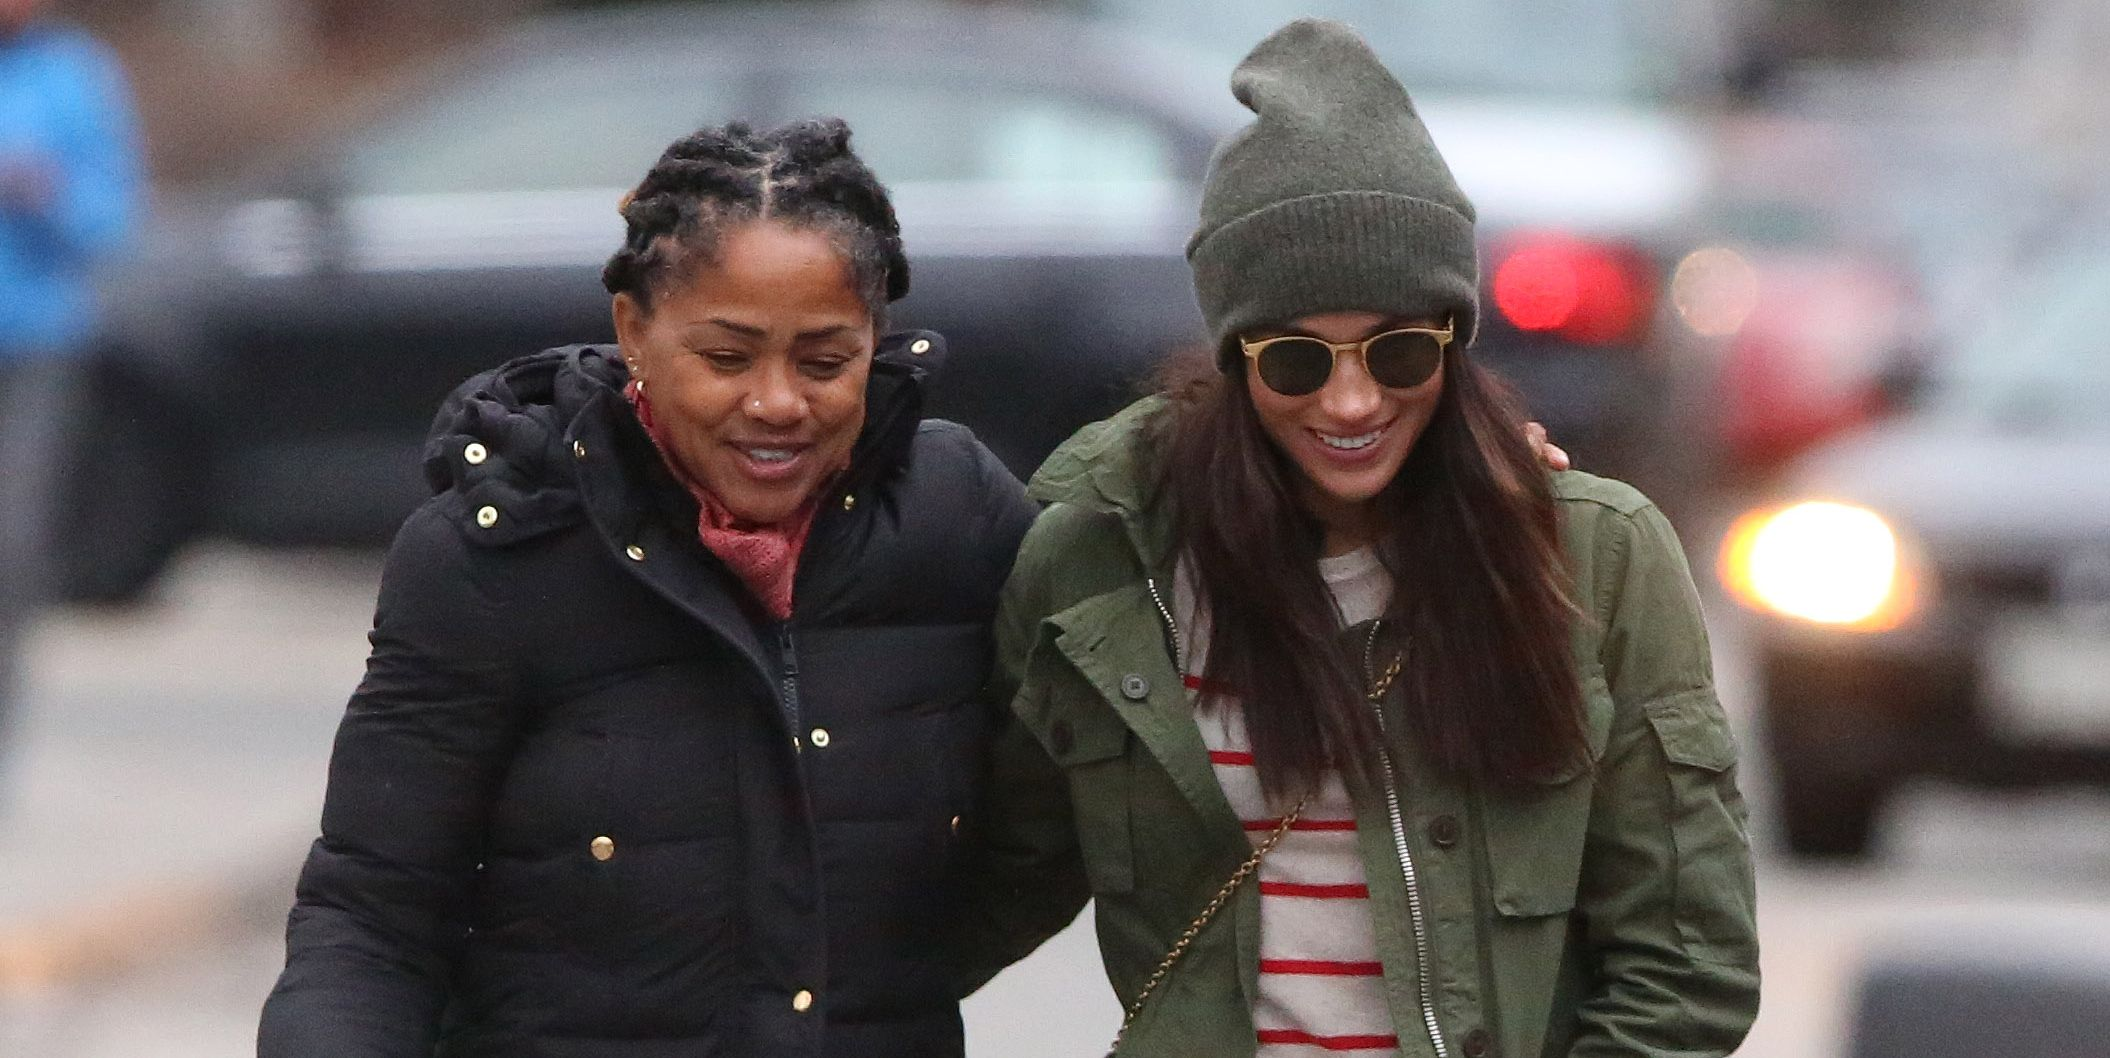 meghan markle s family   pictures of meghan markle s